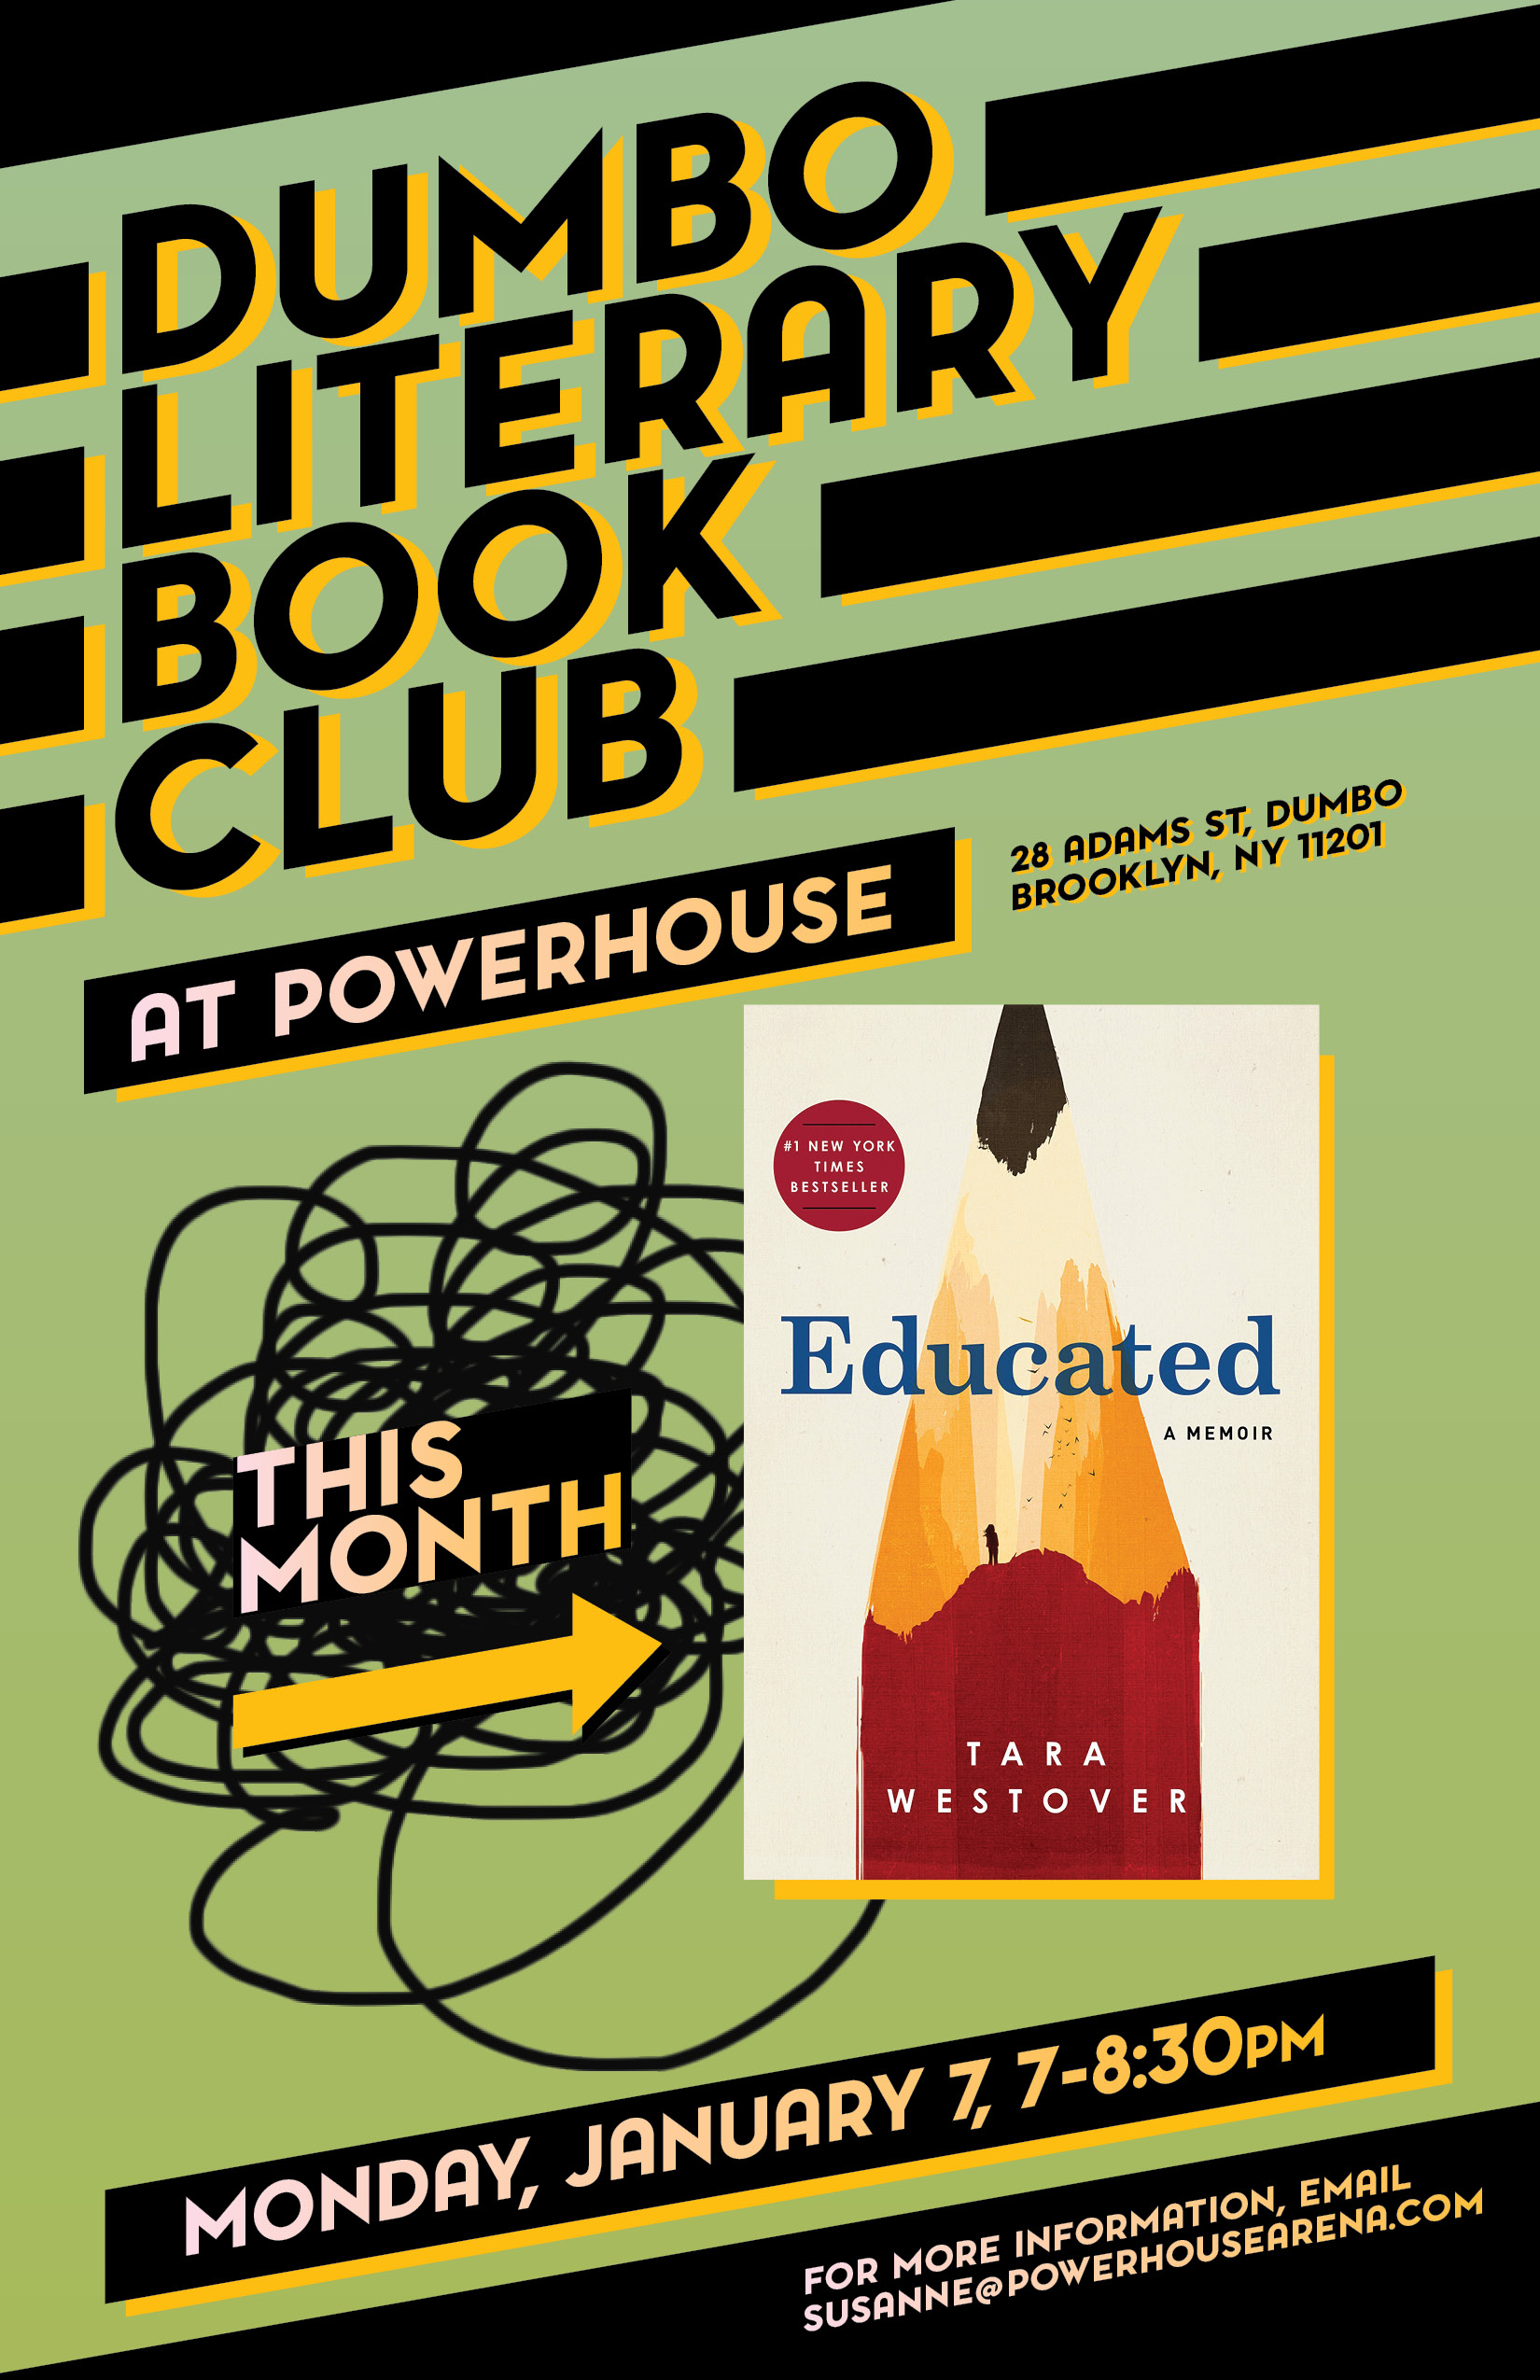 Dumbo Lit Book Club: Educated by Tara Westover